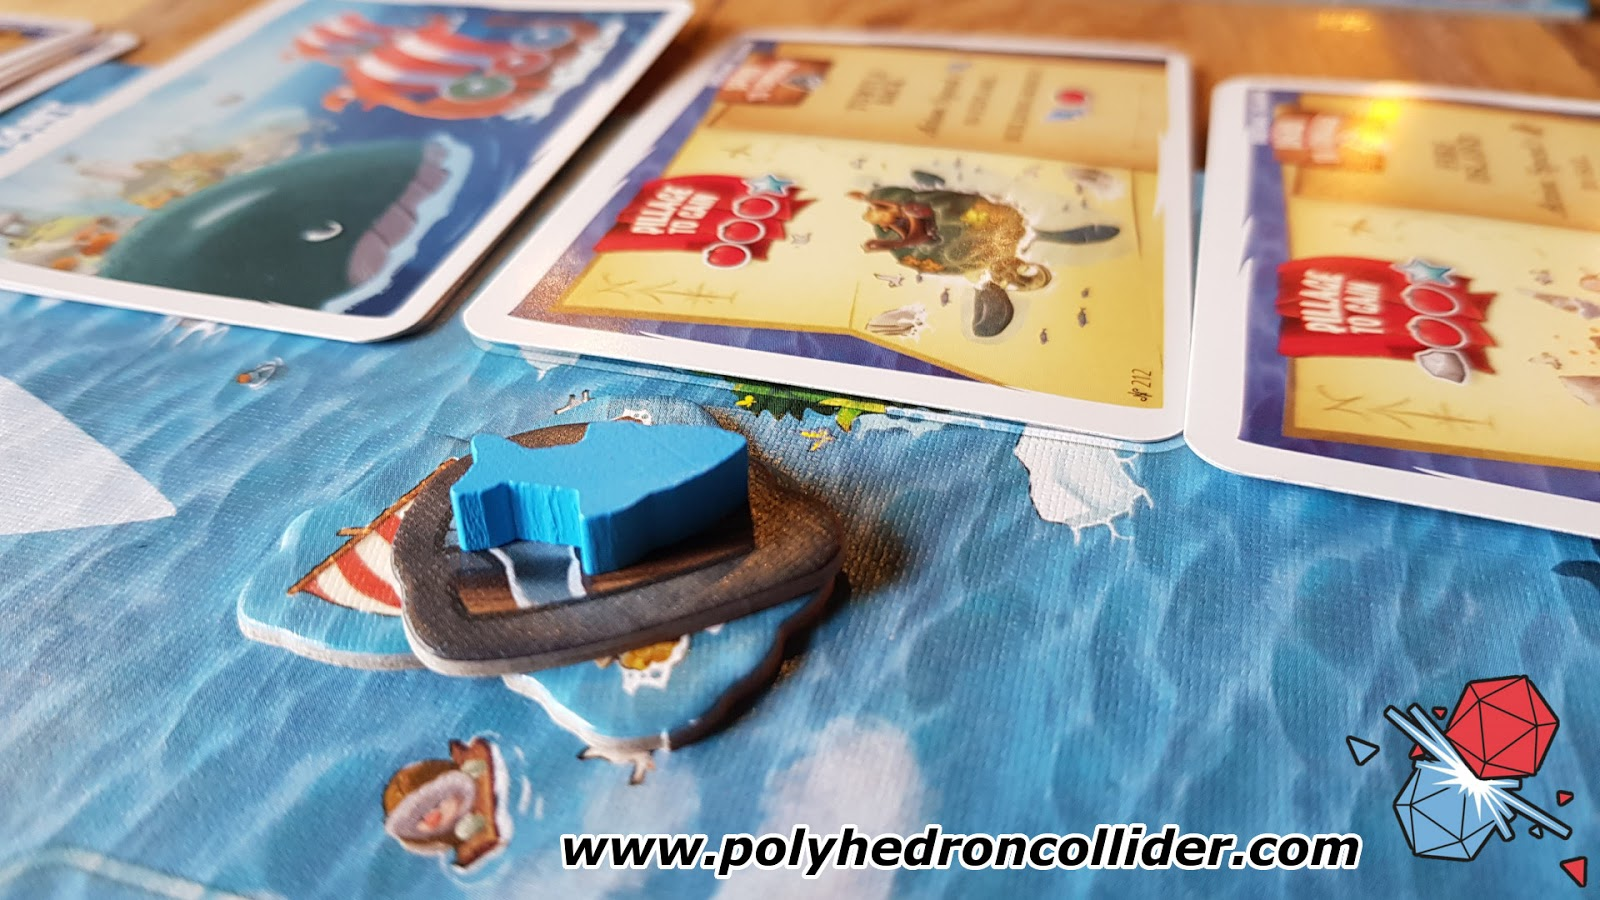 Imperial Settlers: Empires of the North First Thoughts Review Setting Sail